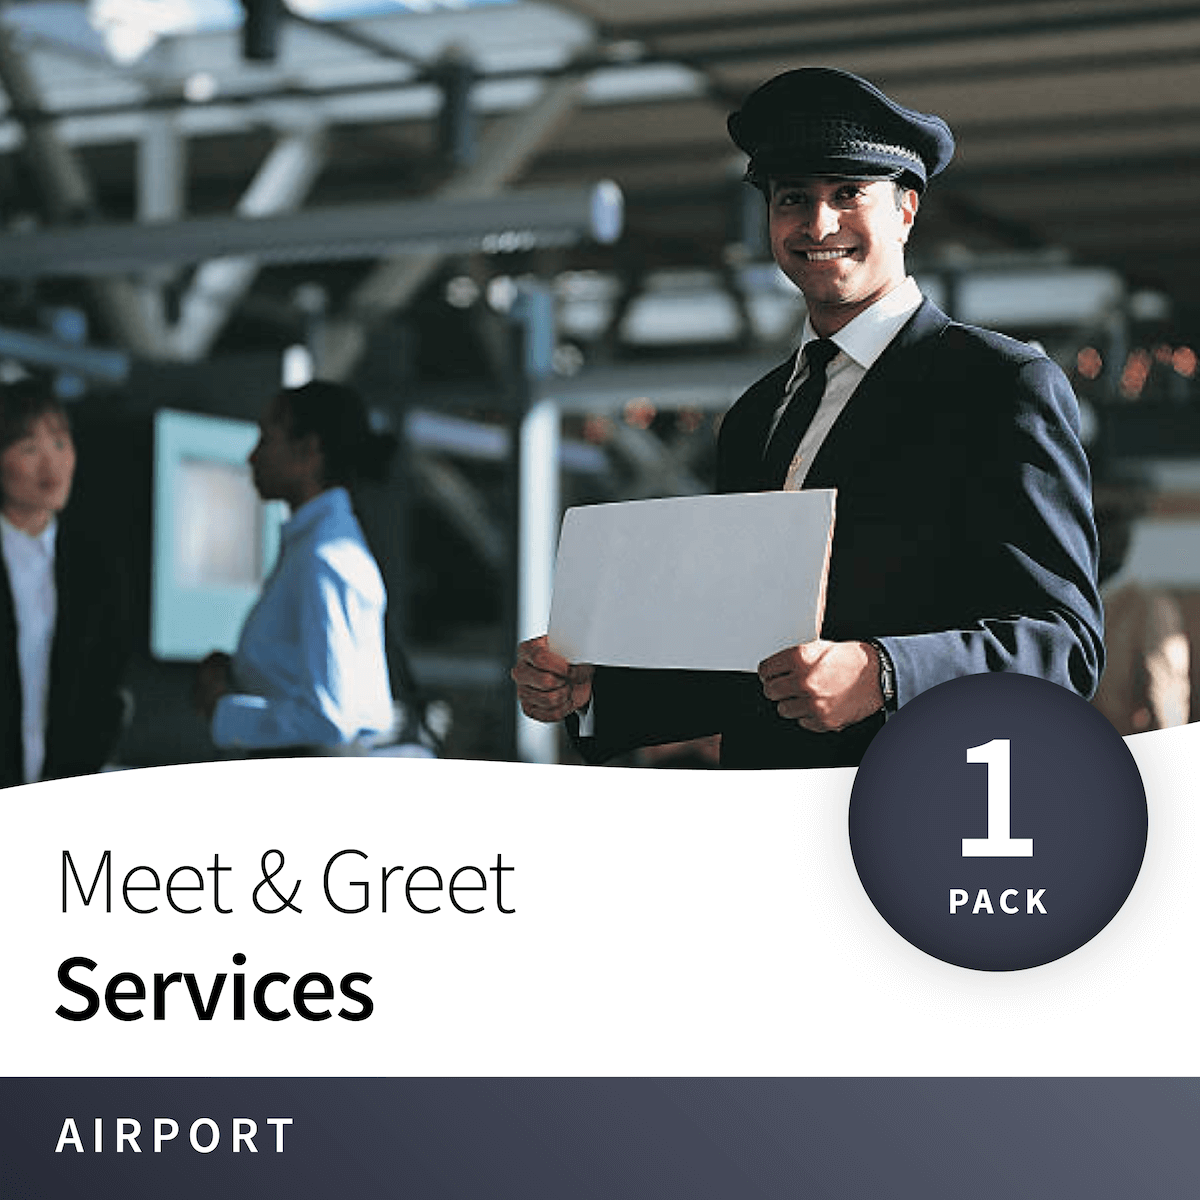 Meet & Greet Services 7